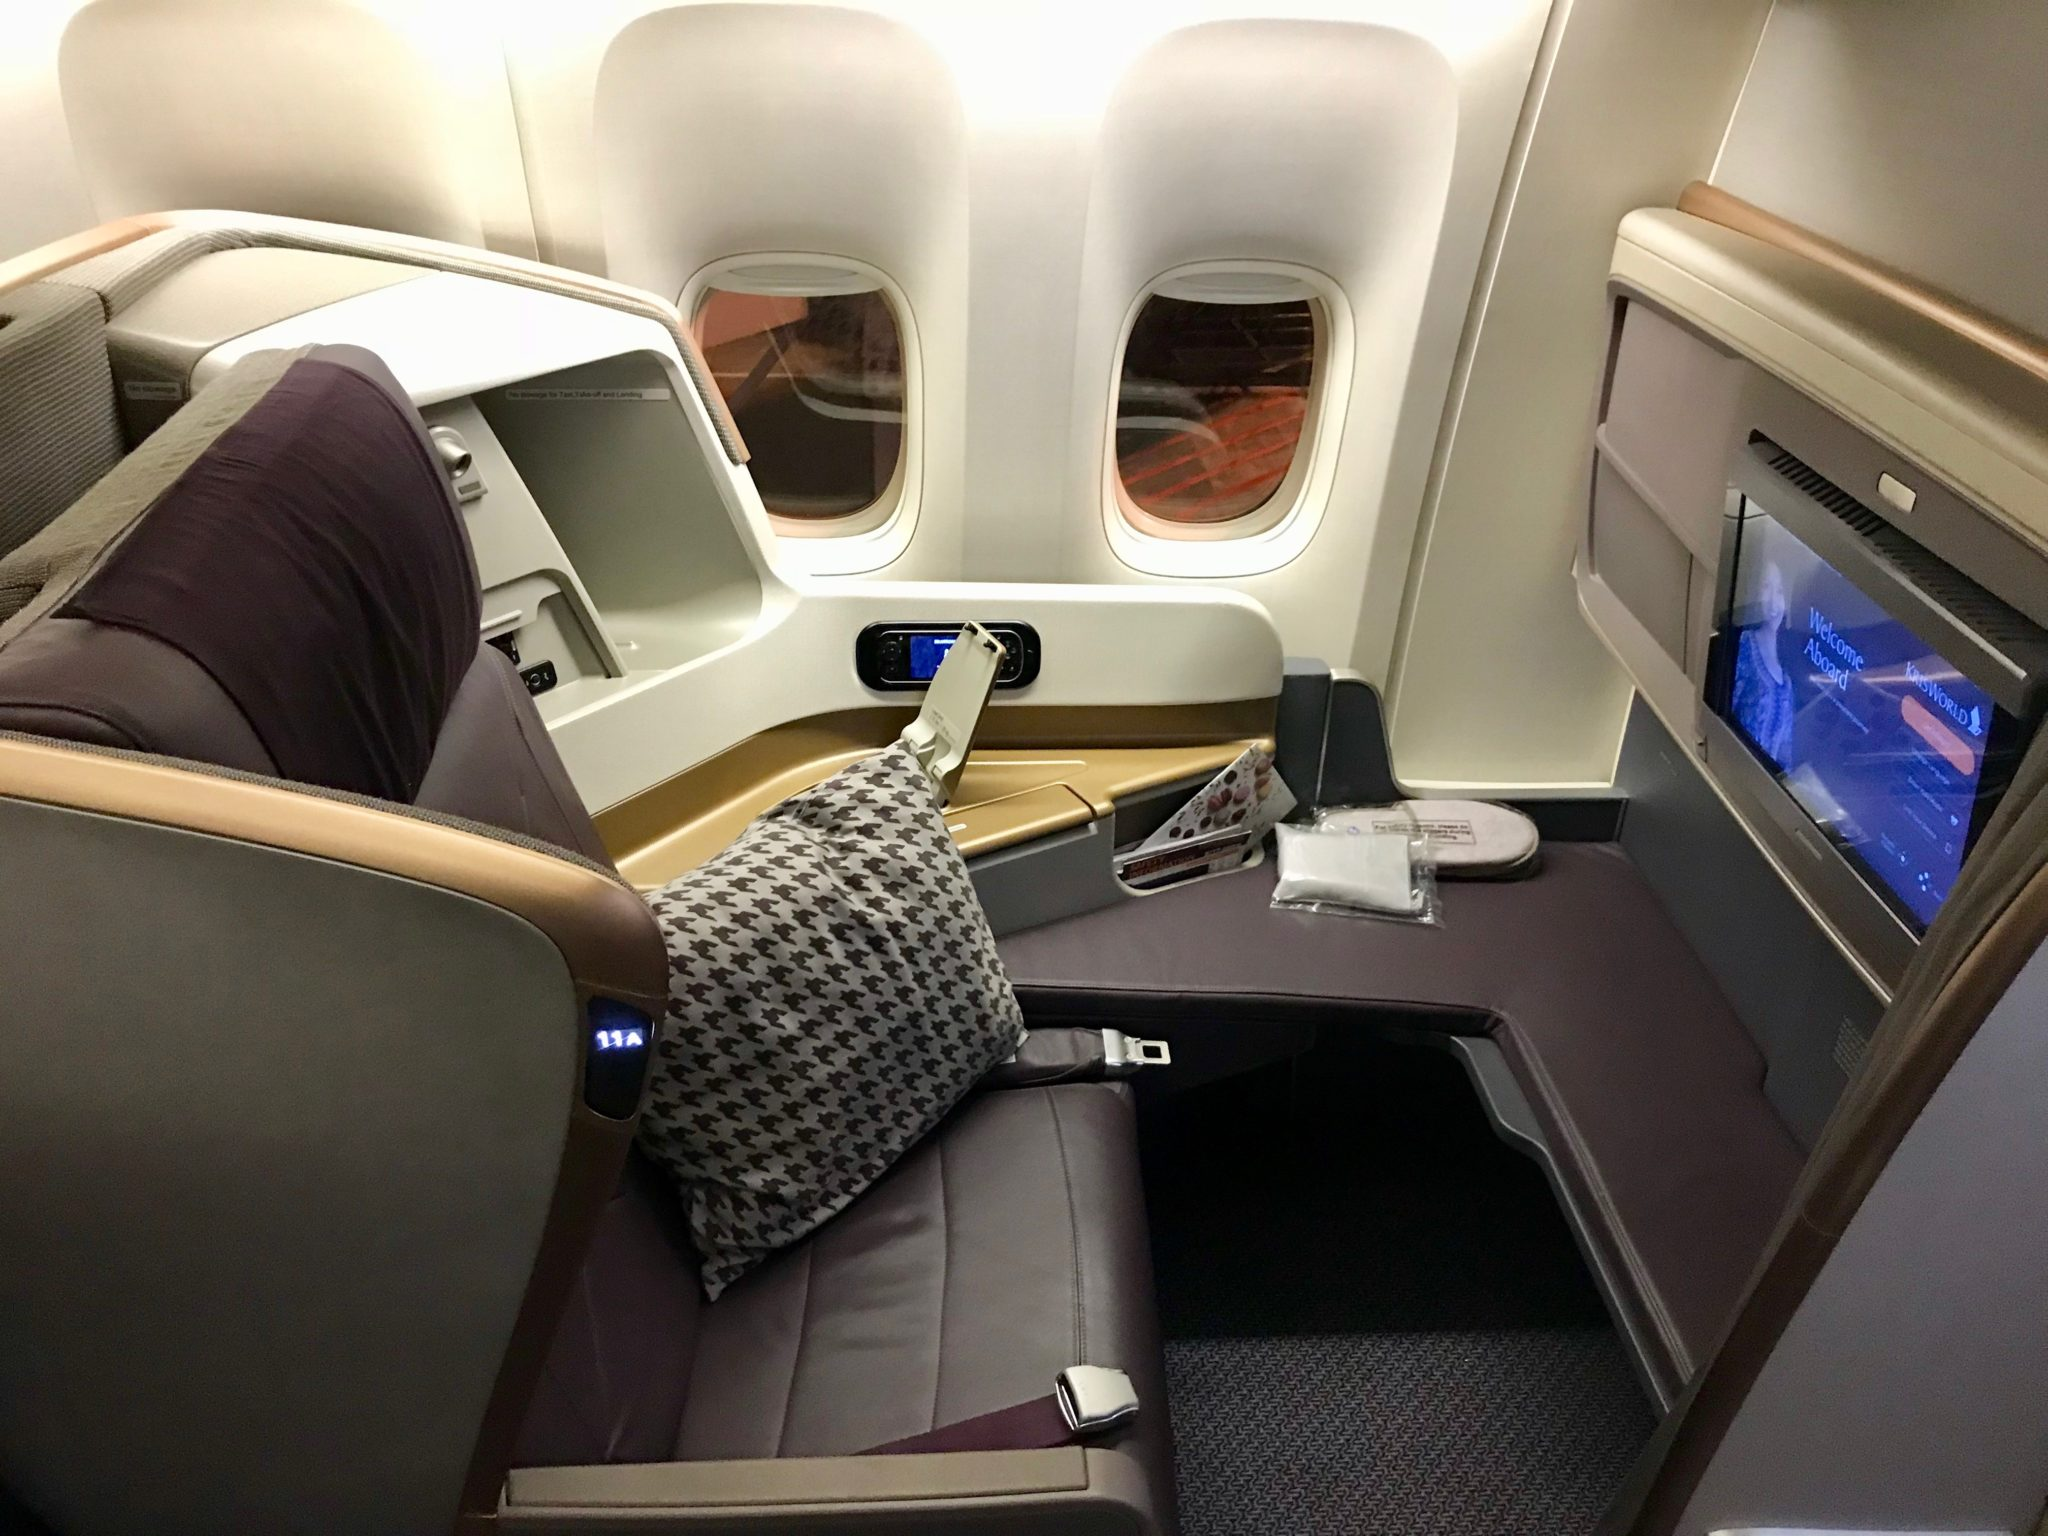 Singapore Airlines Business Class 777 - Seat